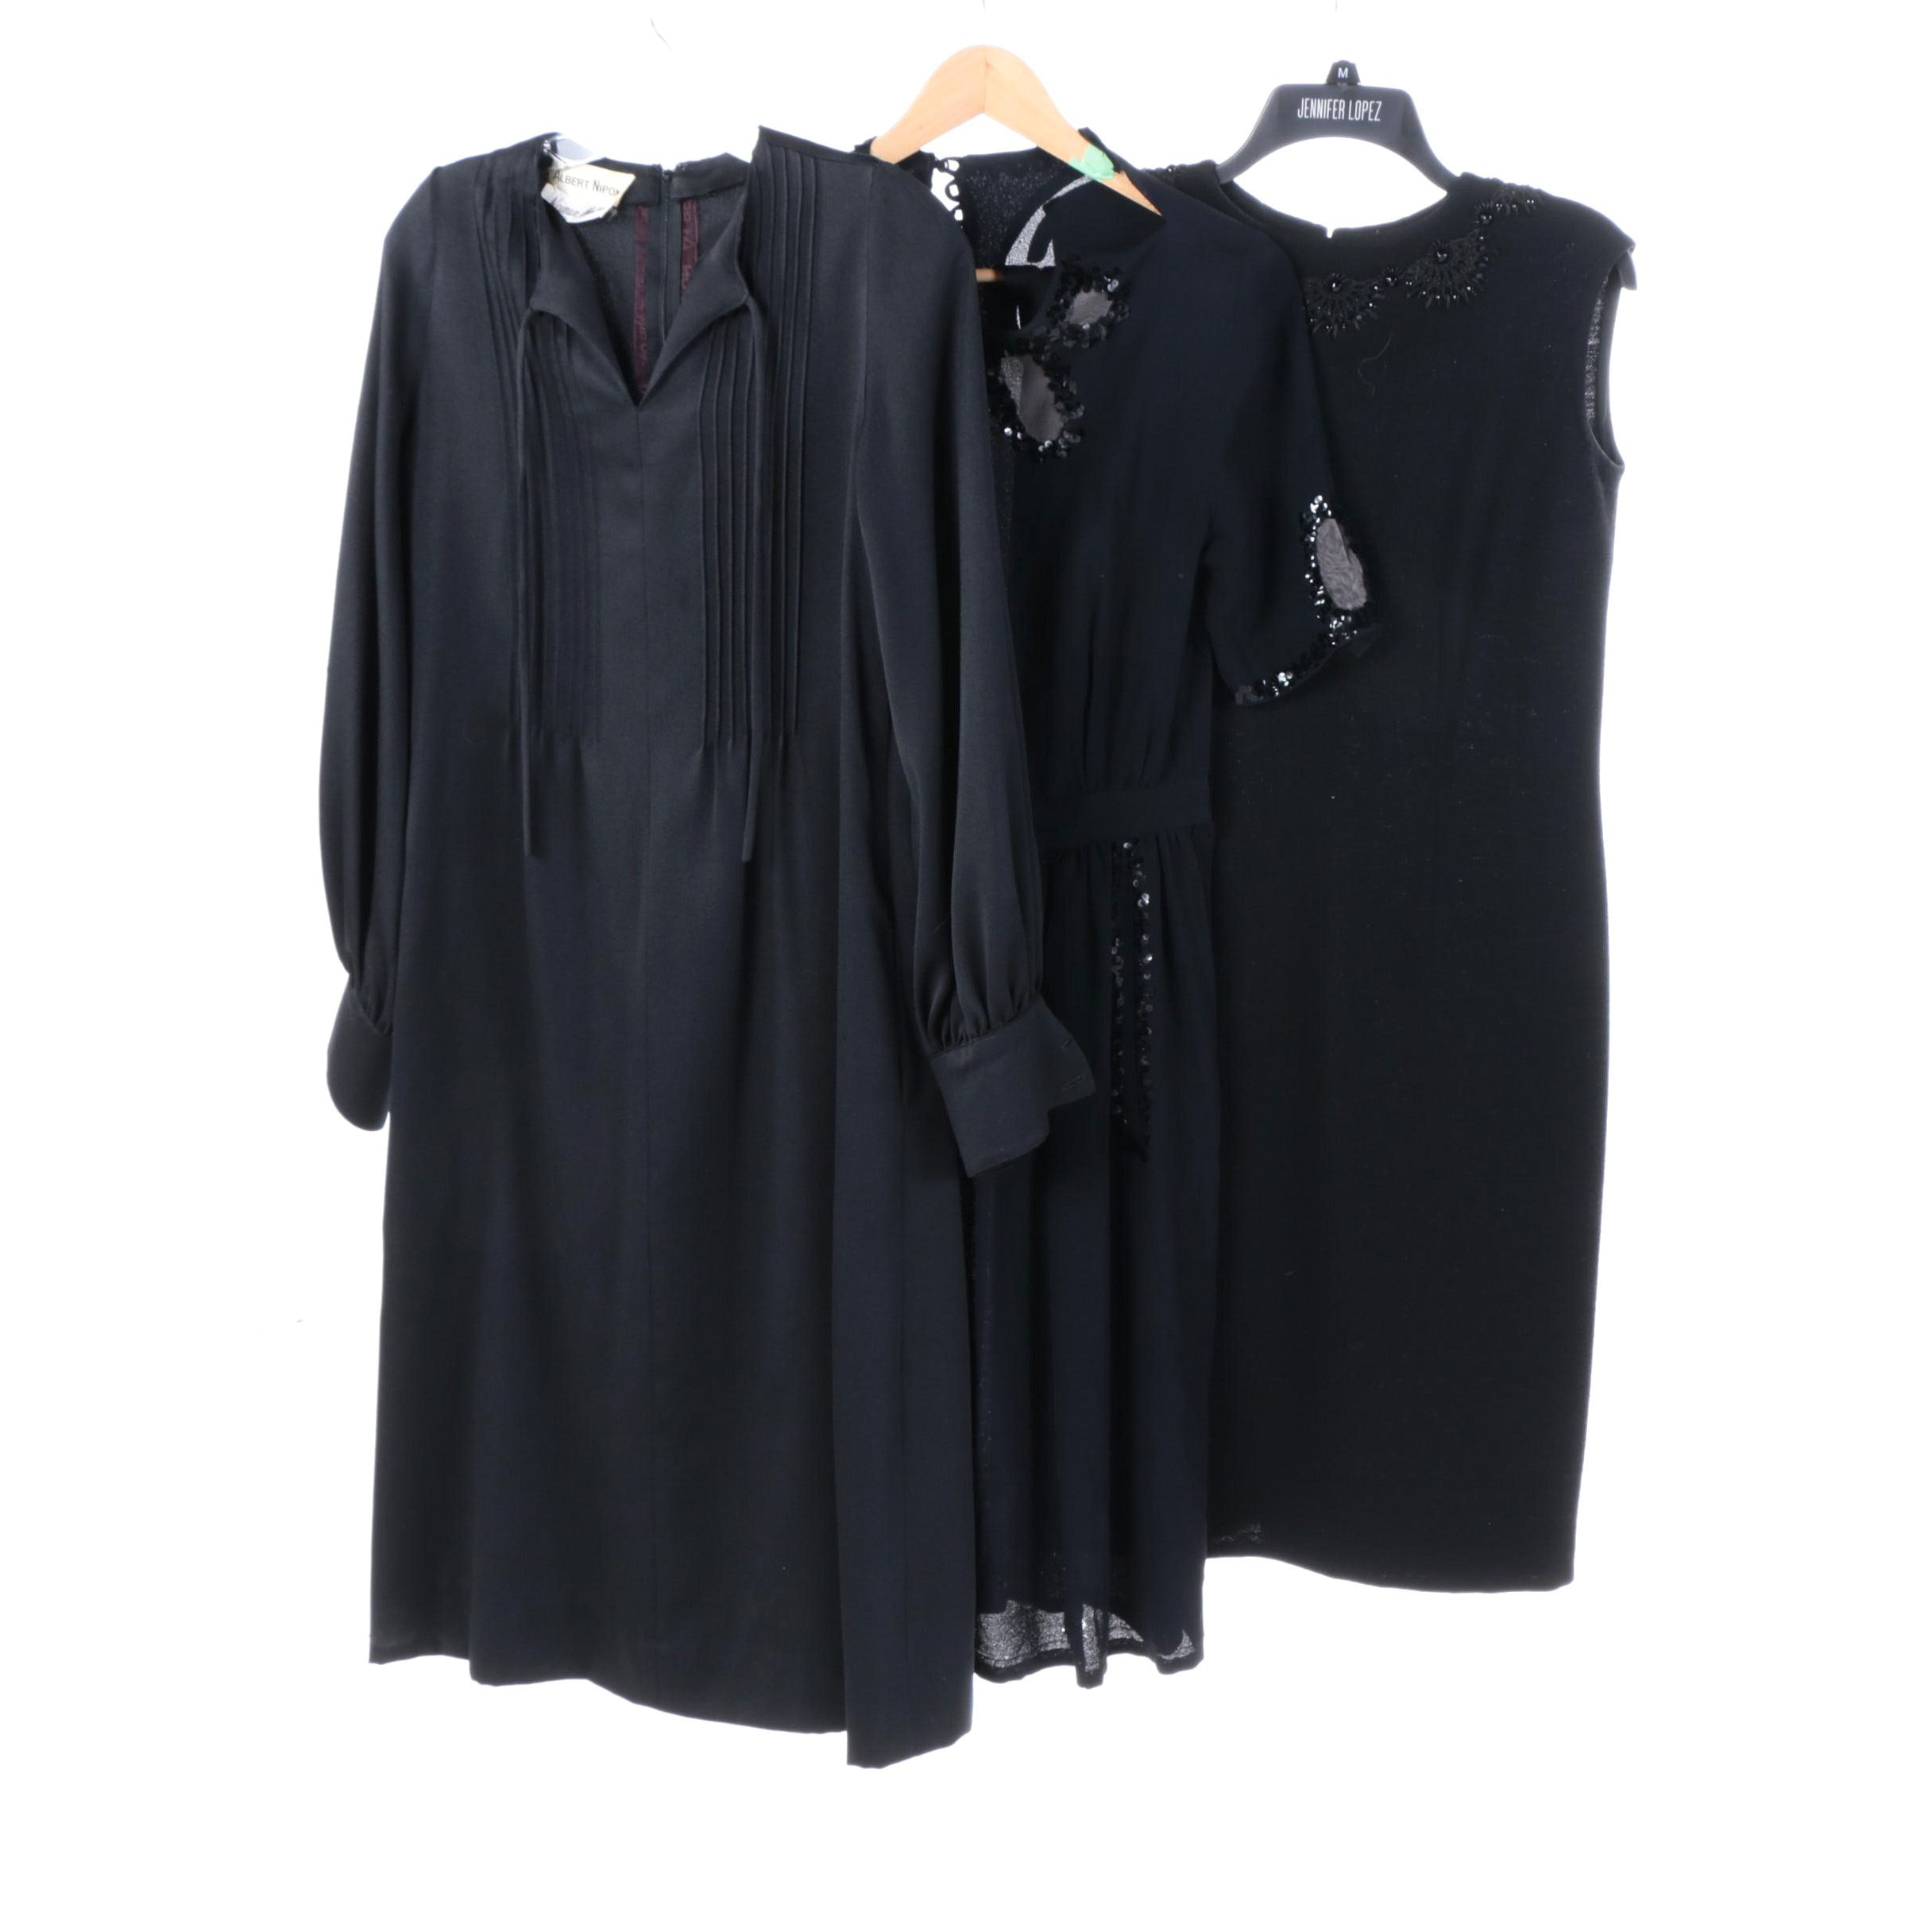 Mid Century Black Dresses Including Albert Nipon, Gino Paoli Italy, Silk